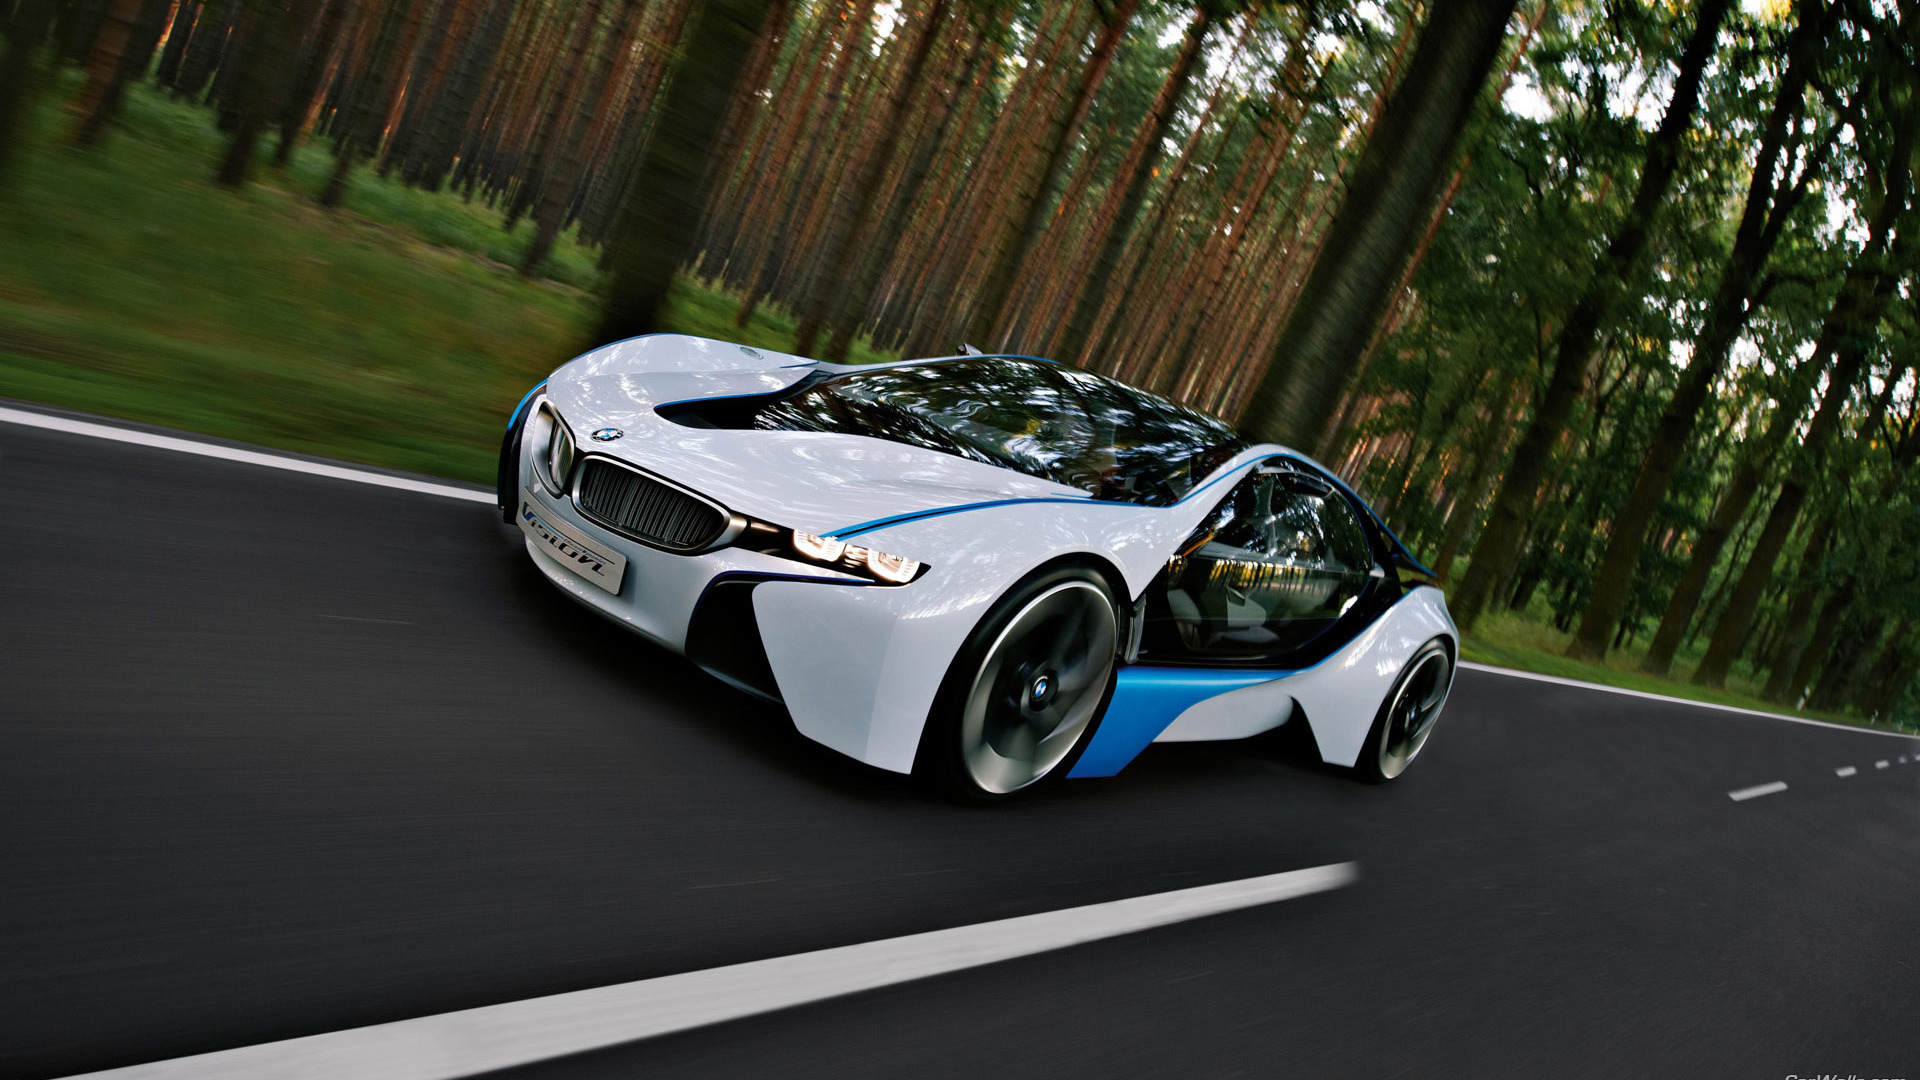 Hd Wallpapers Of Bmw Sf Wallpaper